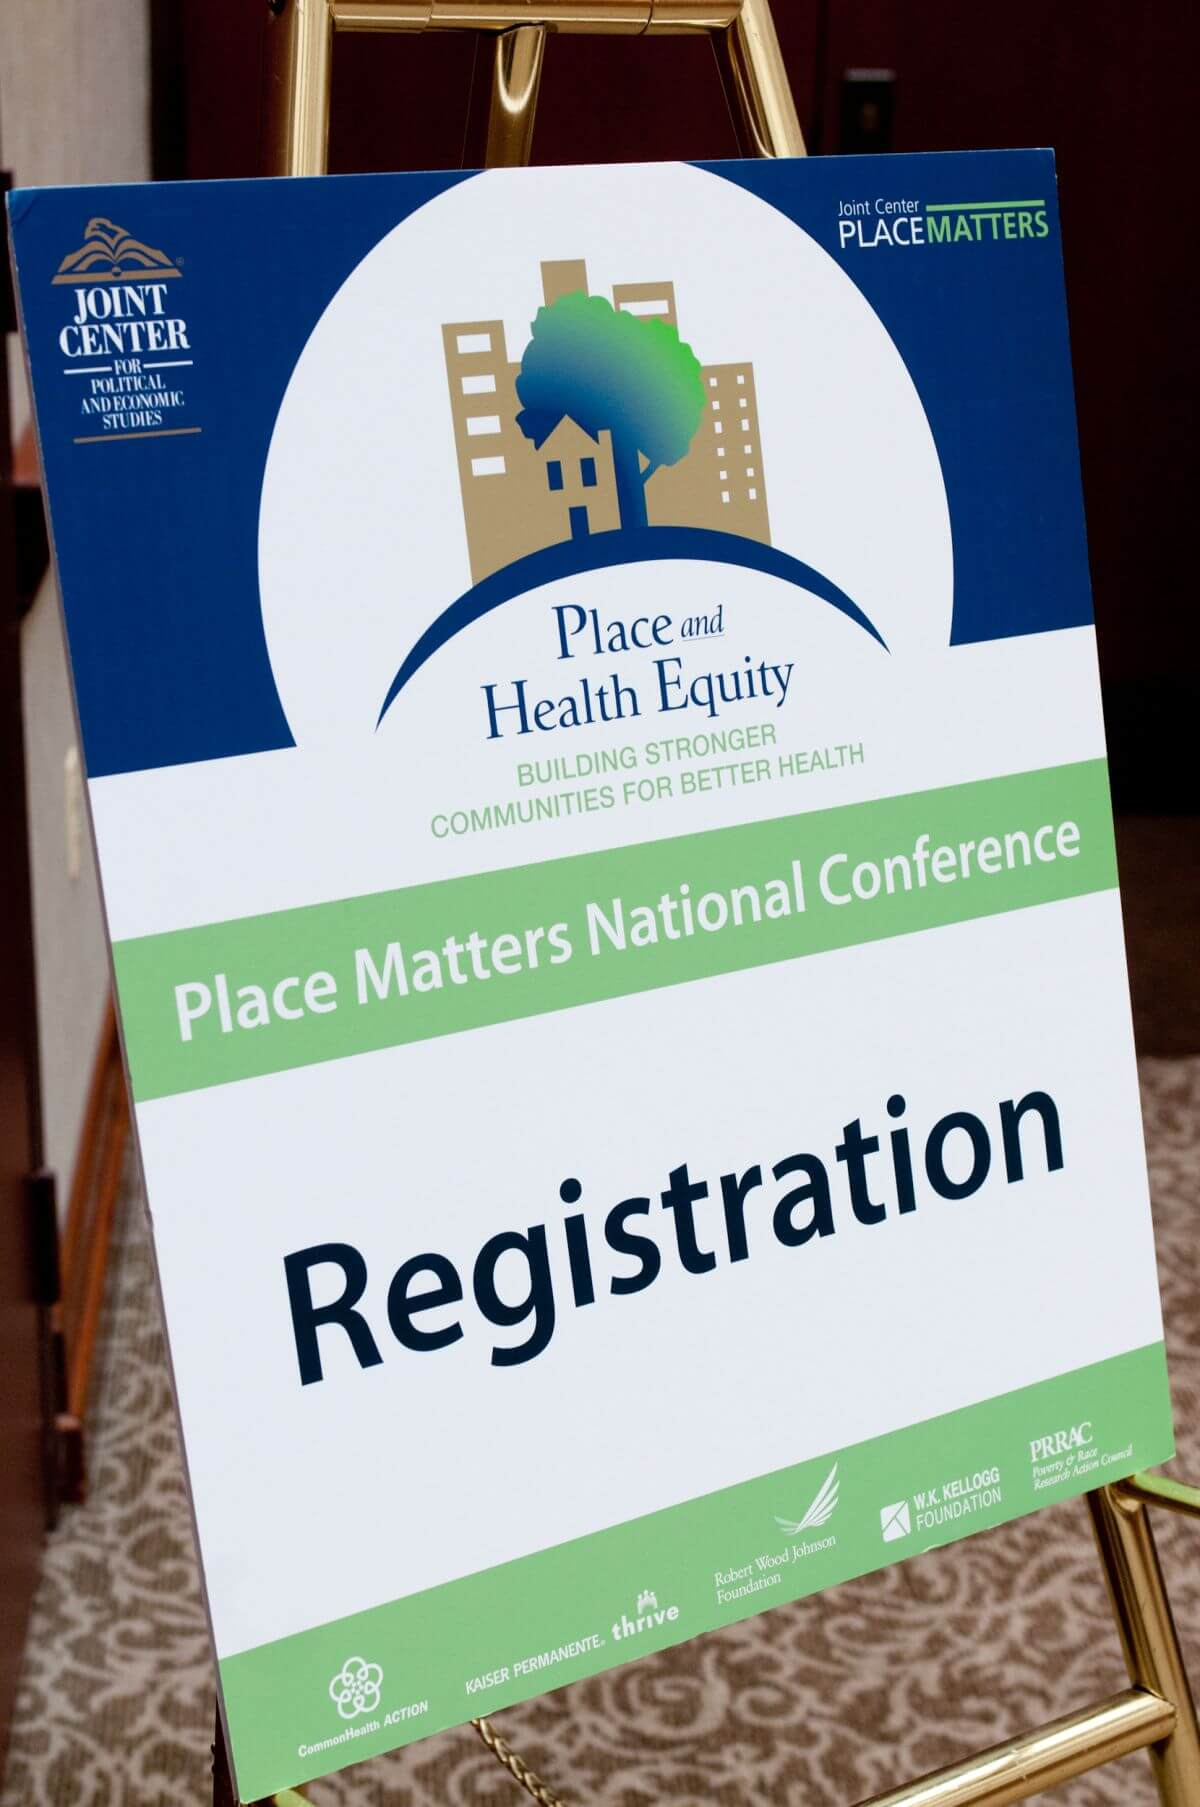 PLACE MATTERS National Conference 2011